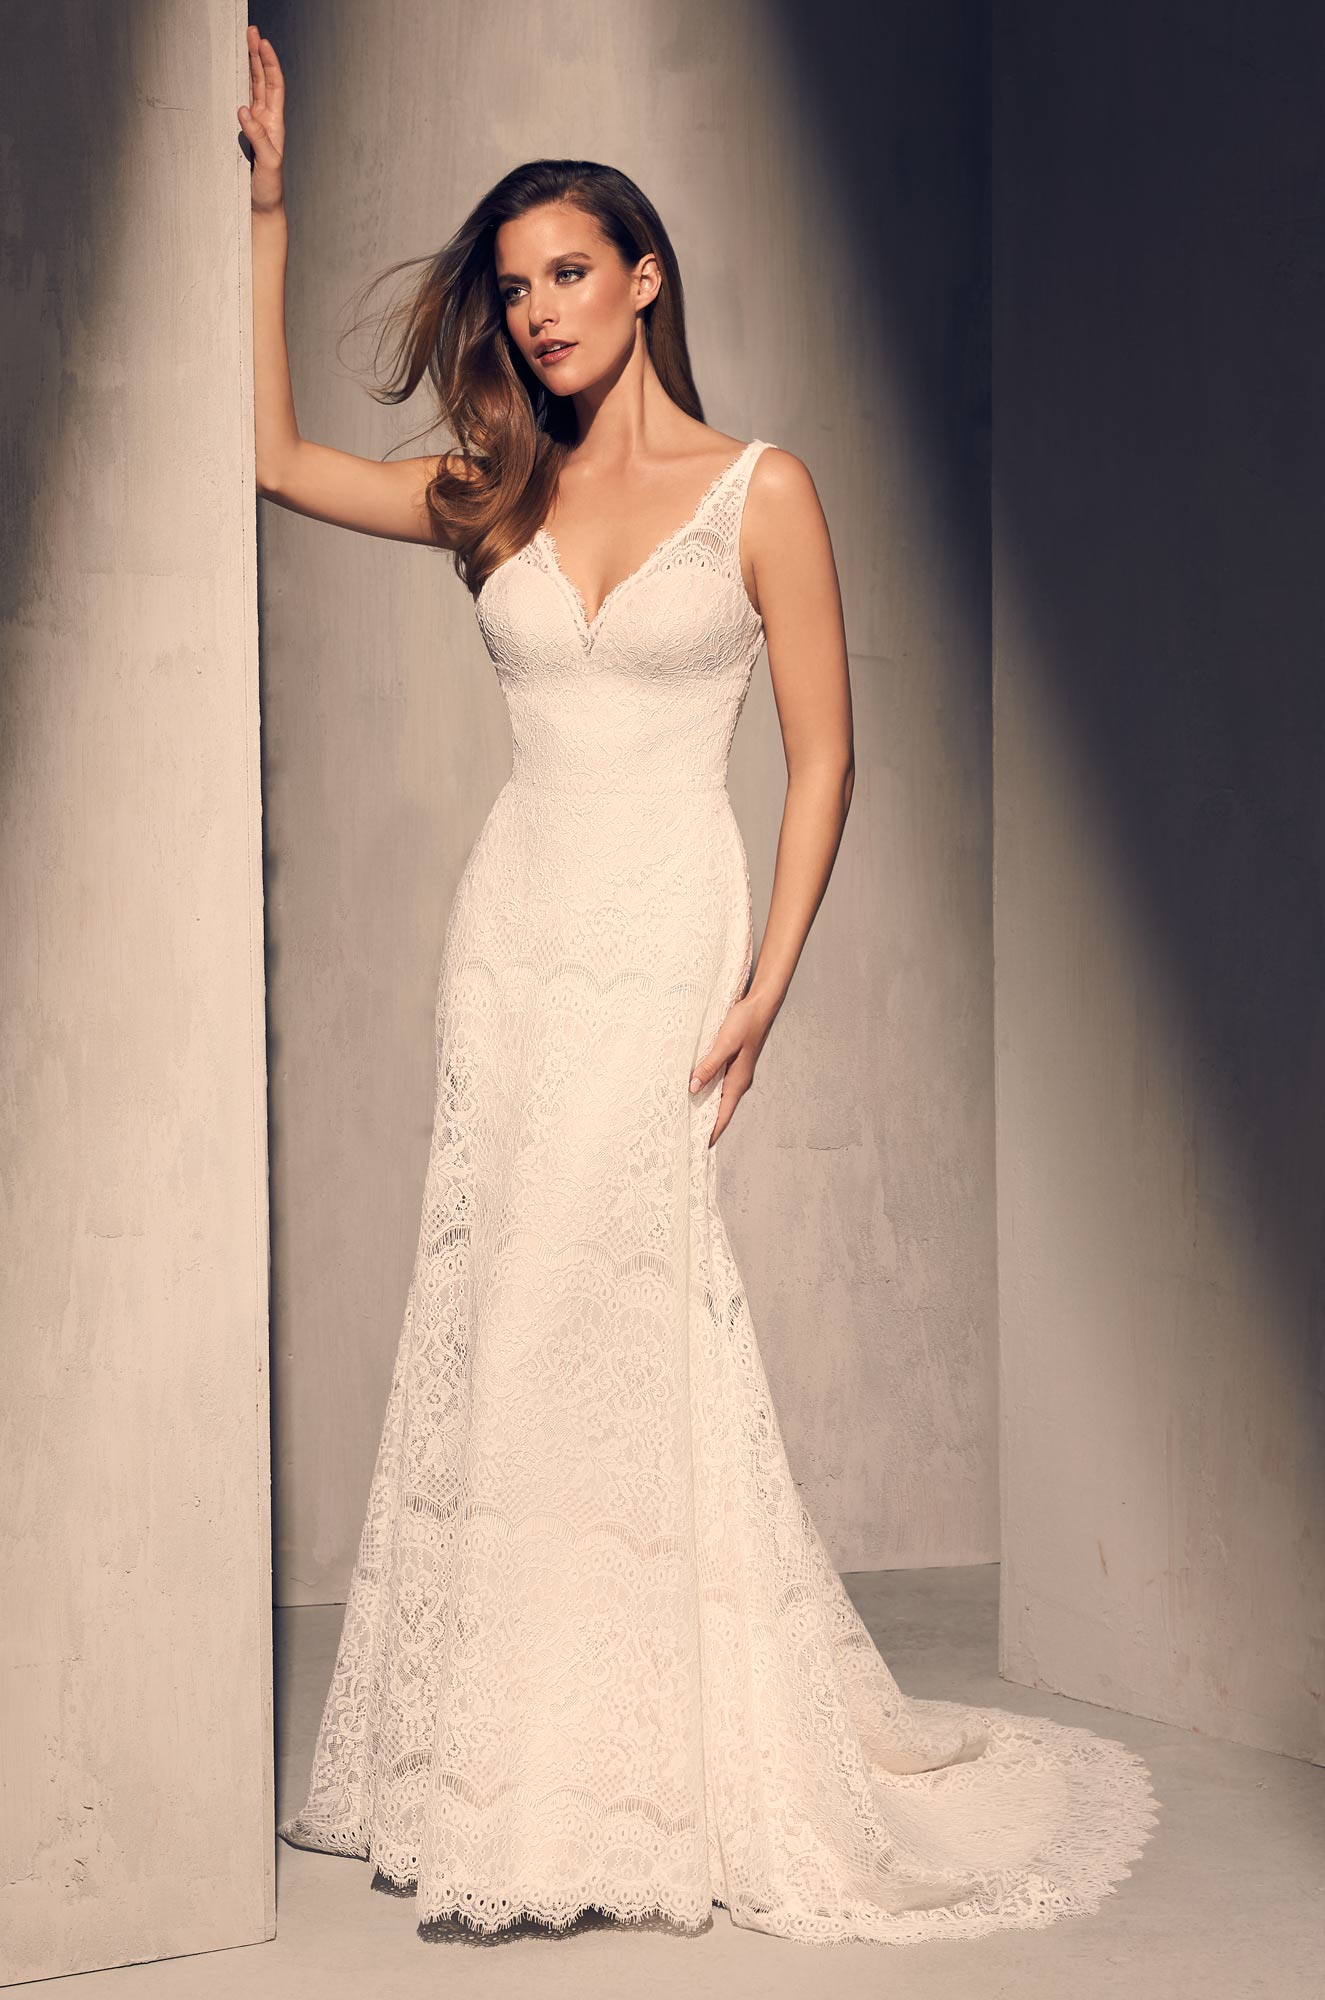 Timeless Lace Wedding Dress – Style #2217 | Mikaella Bridal